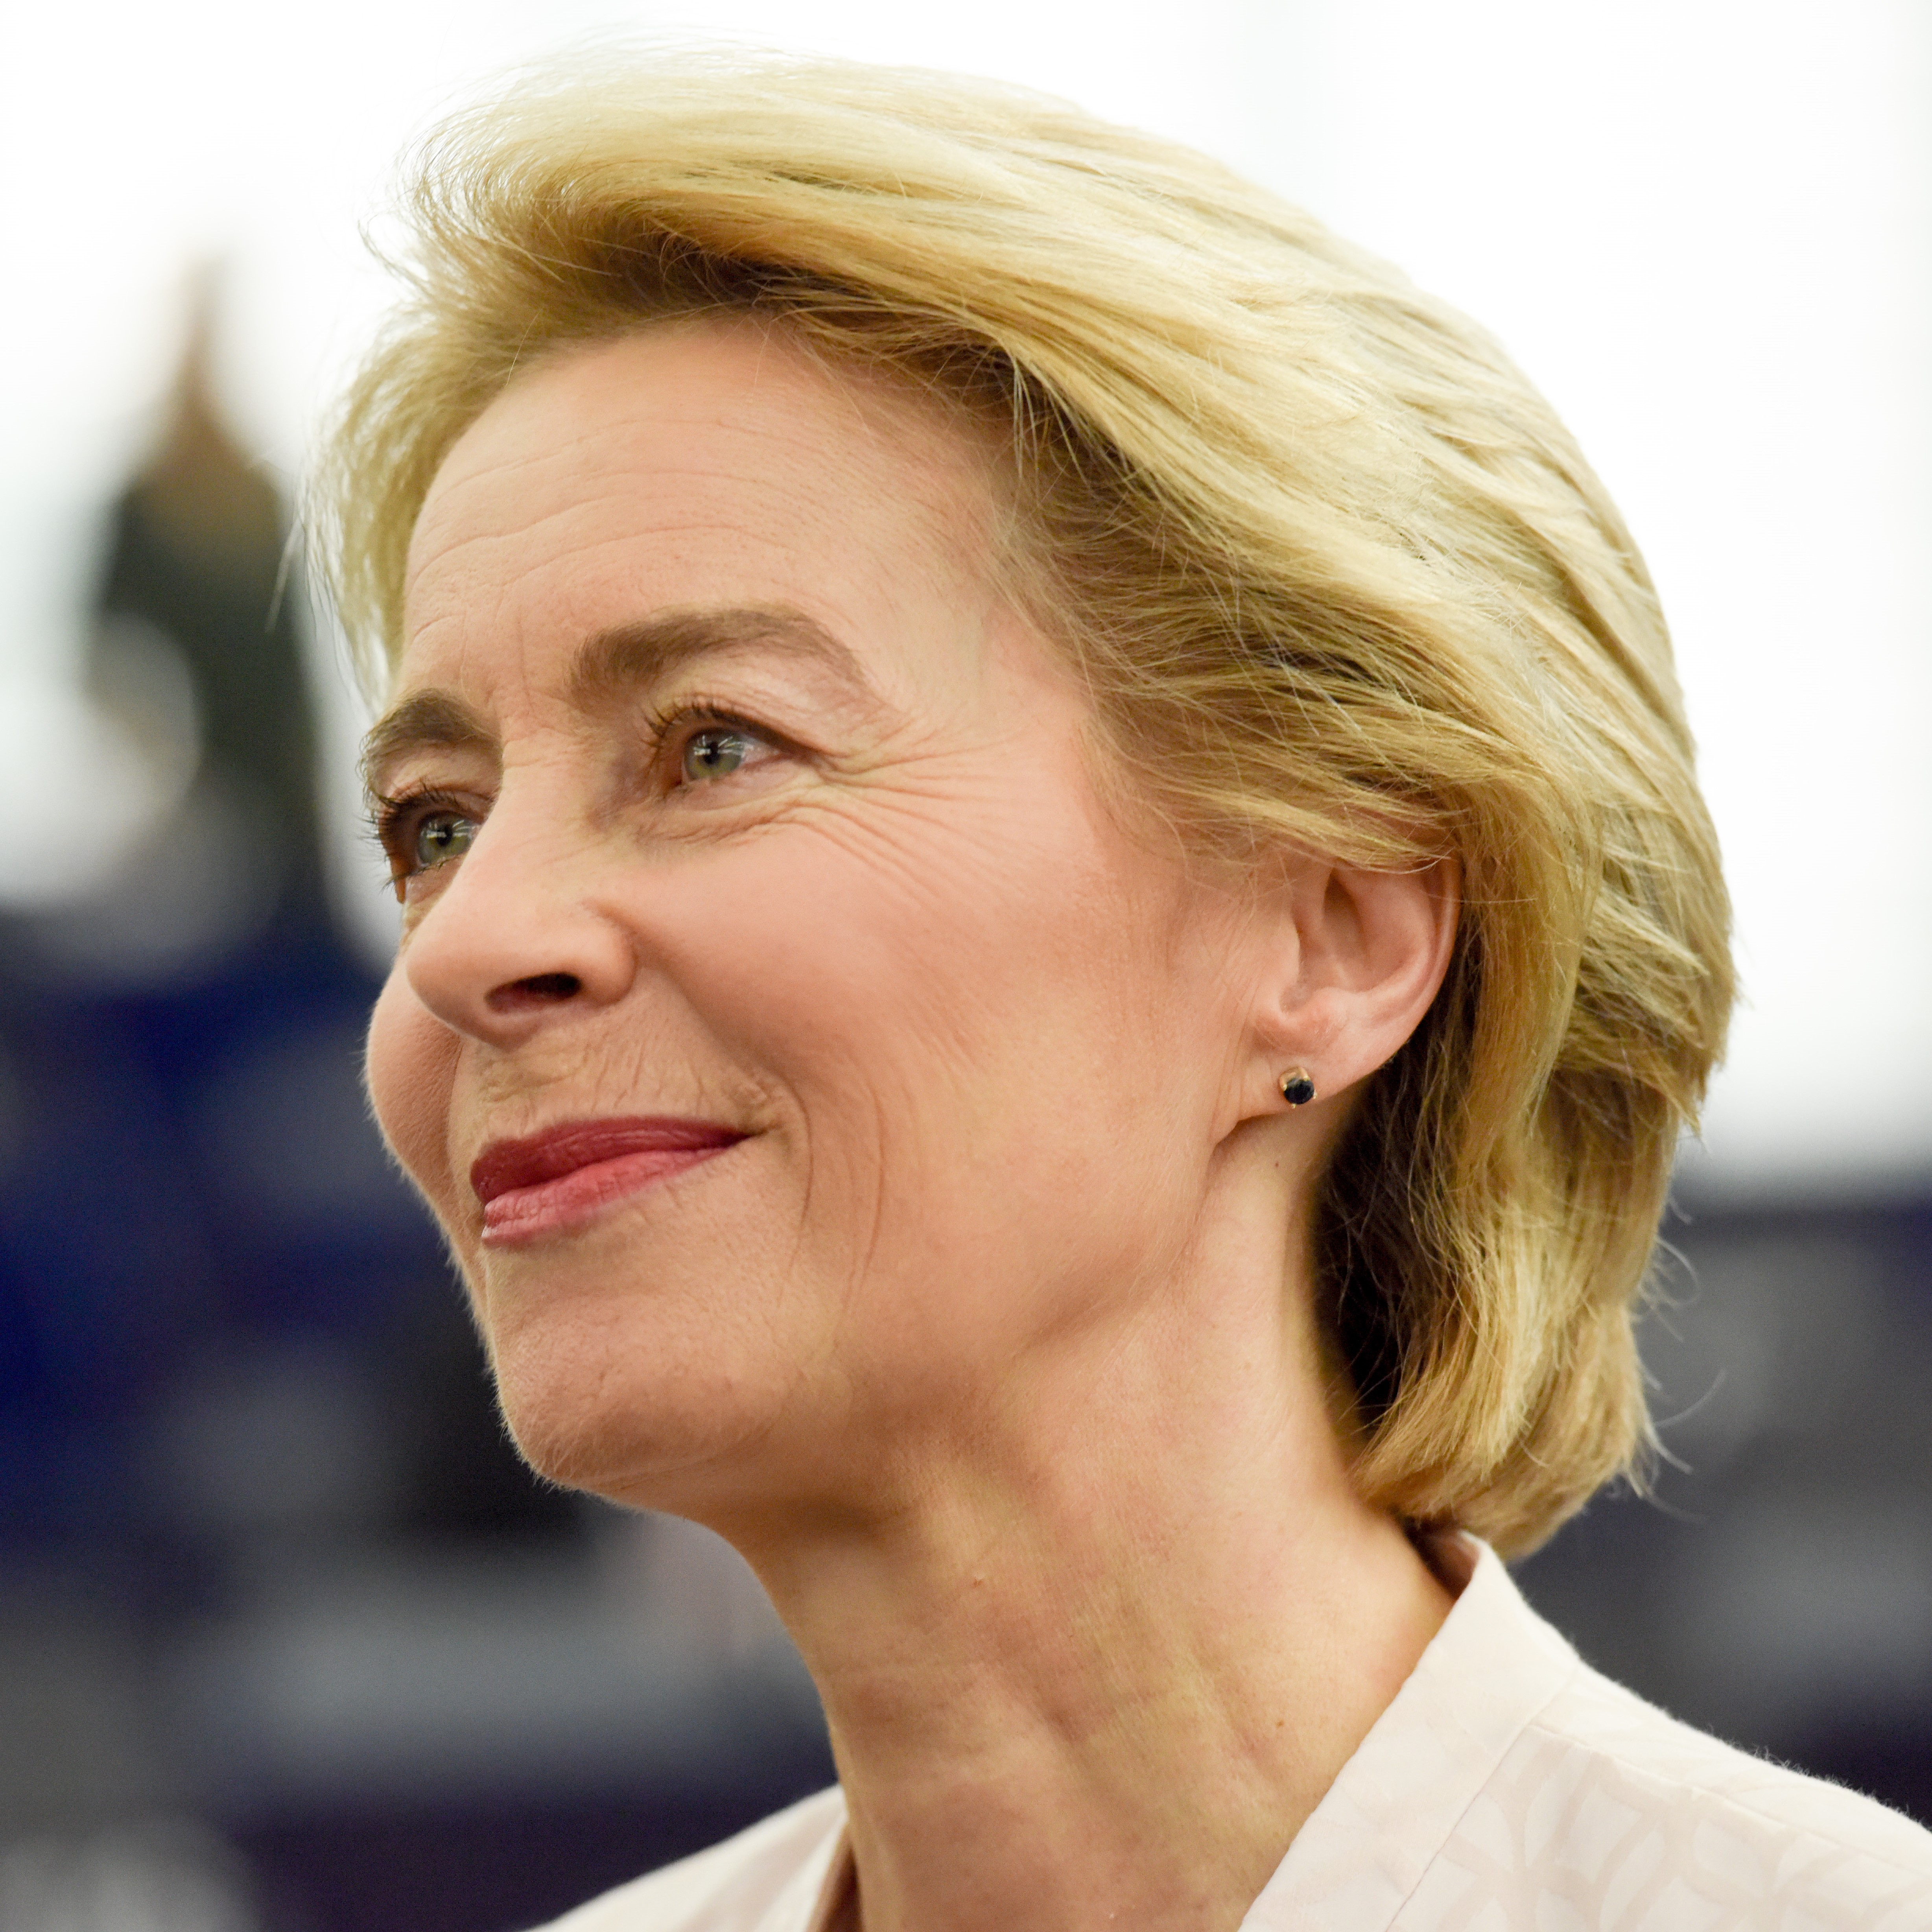 Photo de la présidente de la Commission, Ursula von der Leyen